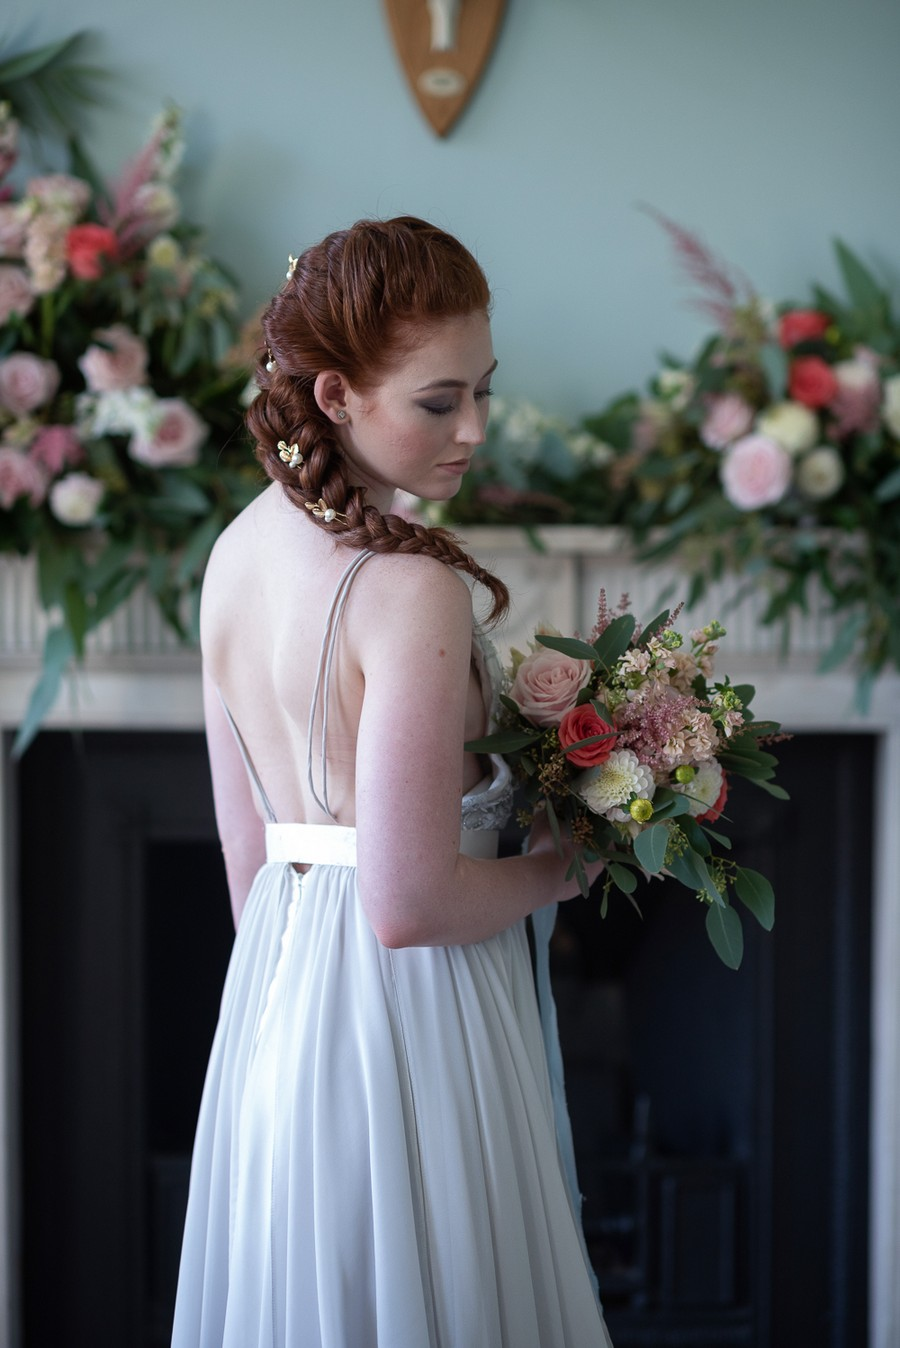 Beautiful fairytale wedding ideas from Clissold Park on English Wedding. Image credit Eva Tarnok Photography (17)